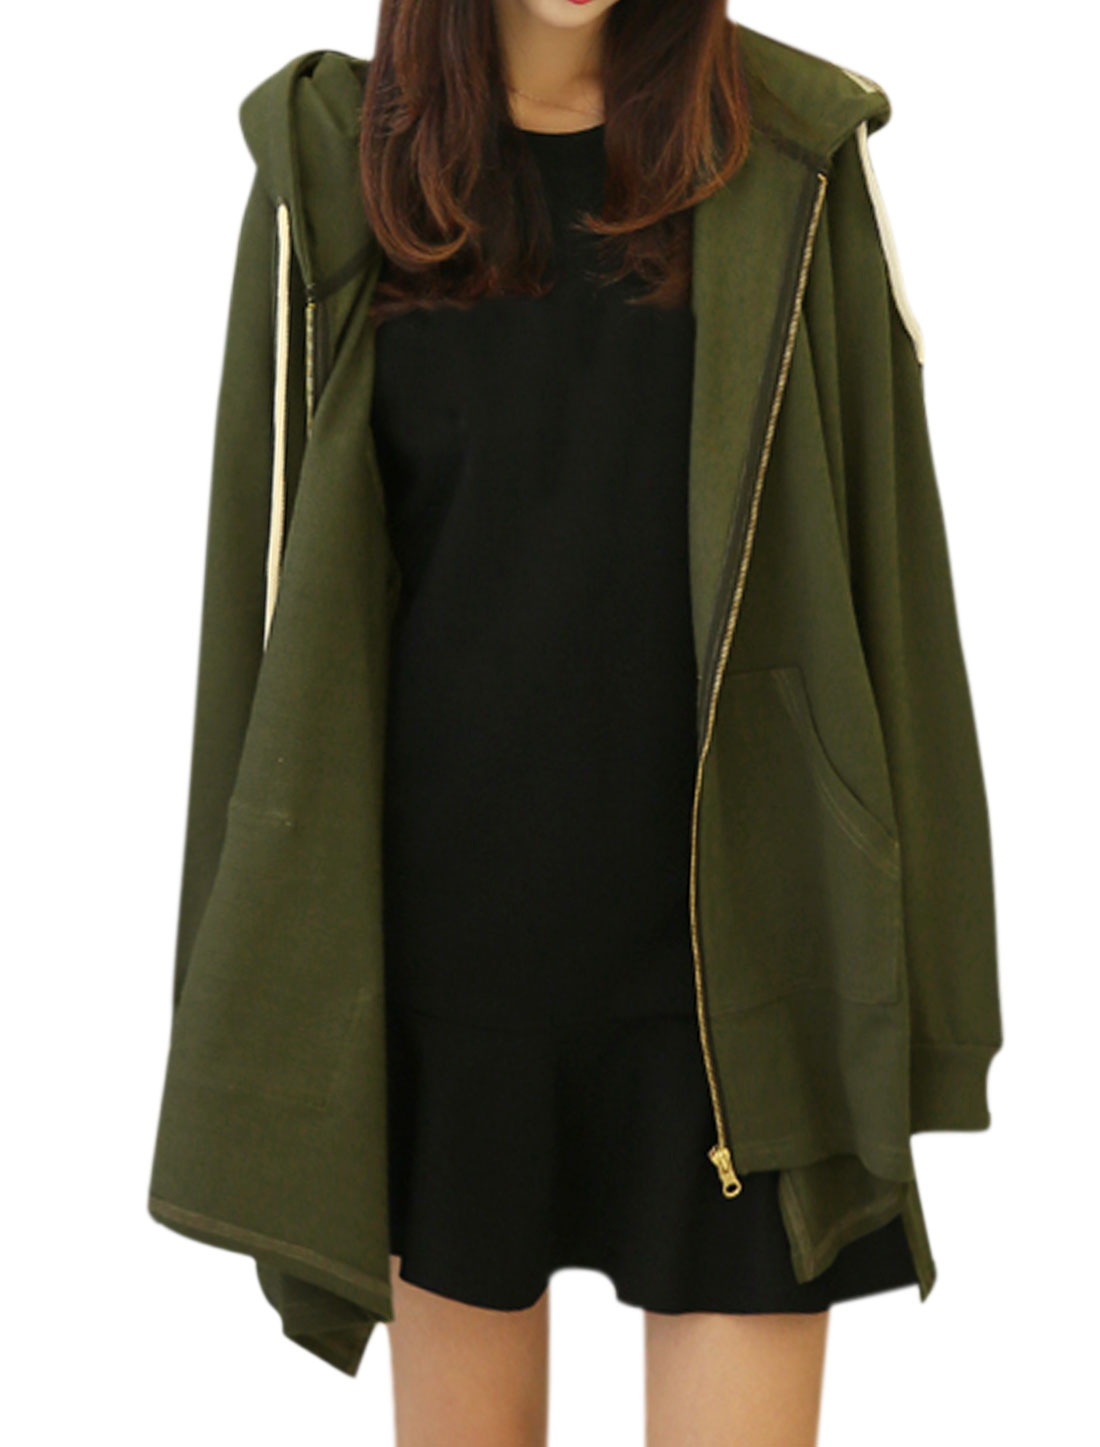 Women Long Sleeves Asymmetric Hem Drawstring Hooded Tunic Jacket Green XS